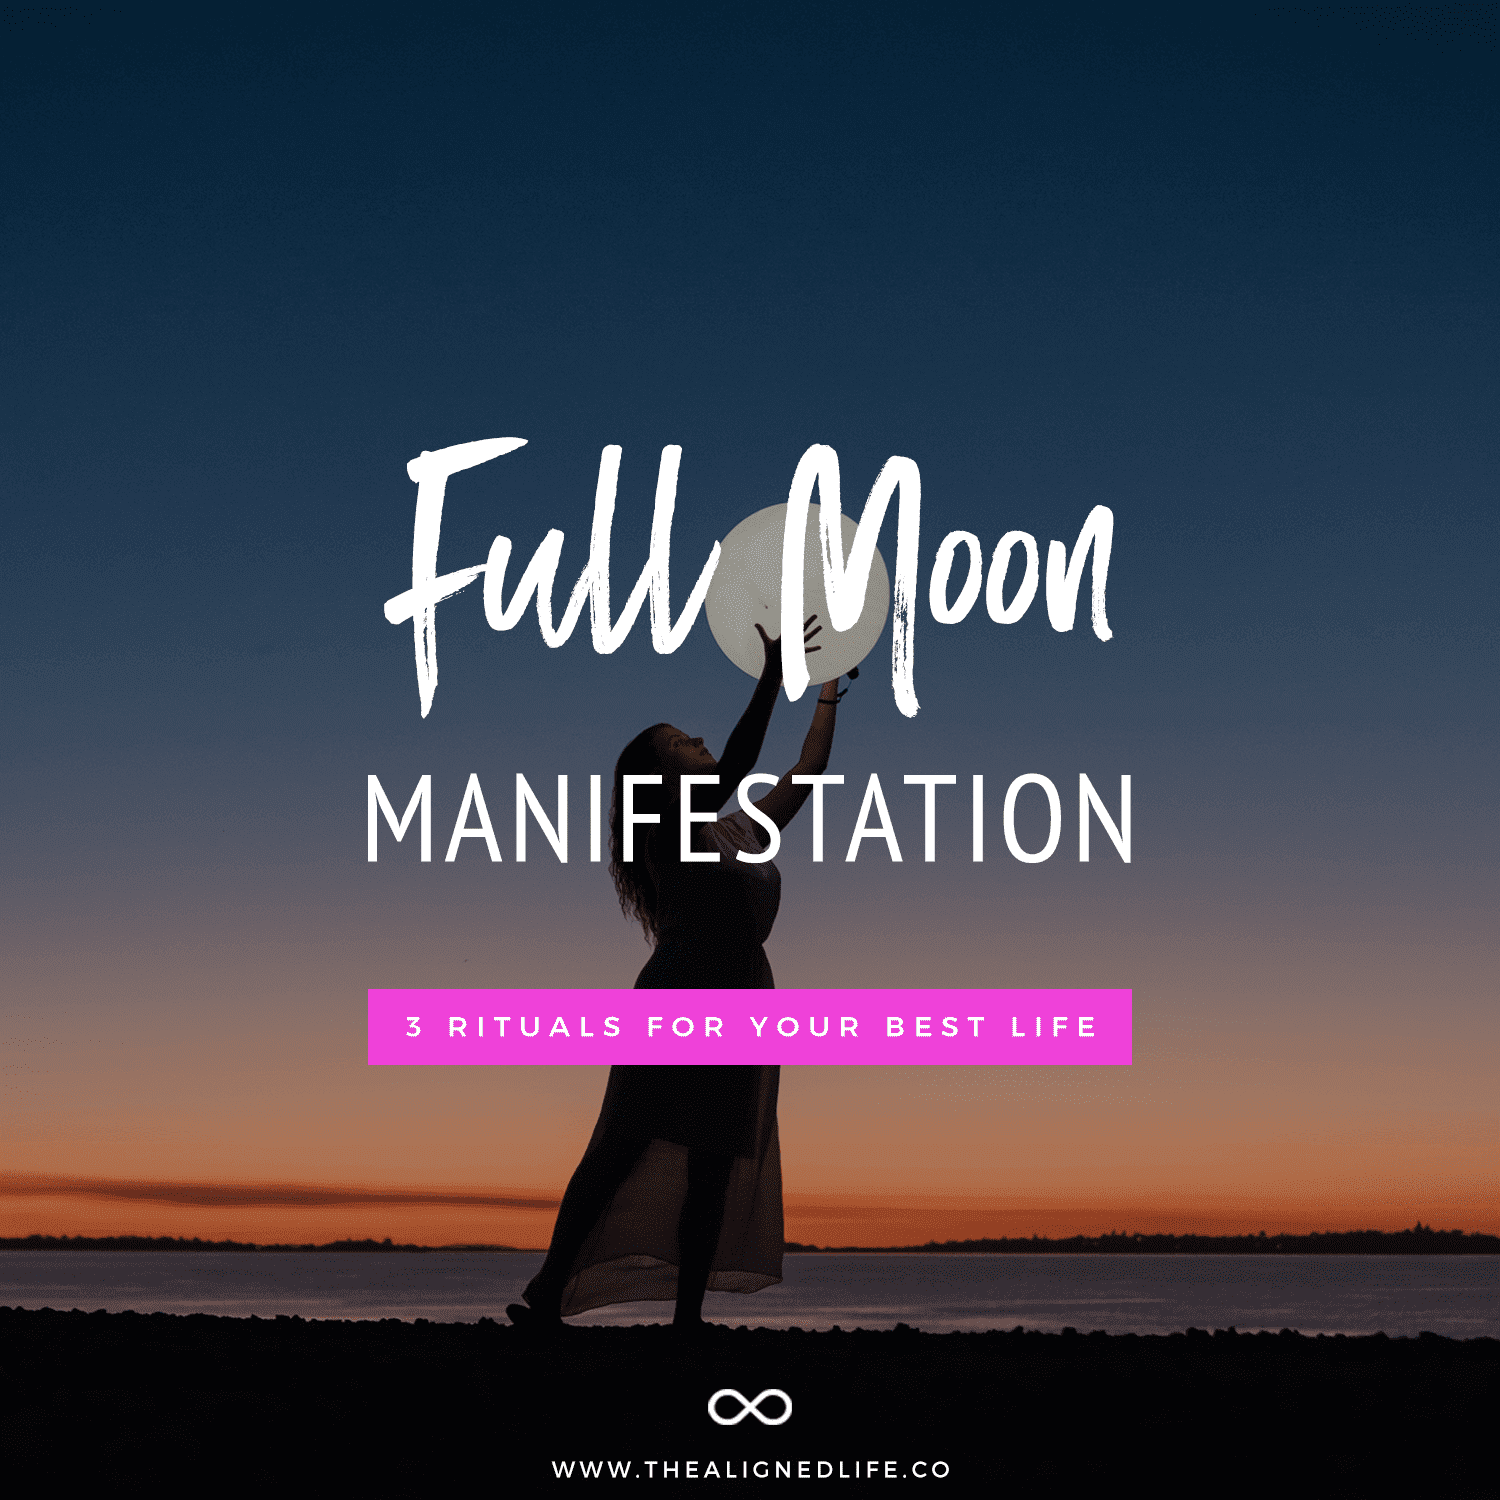 Full Moon Manifestation: 3 Rituals For Your Best Life